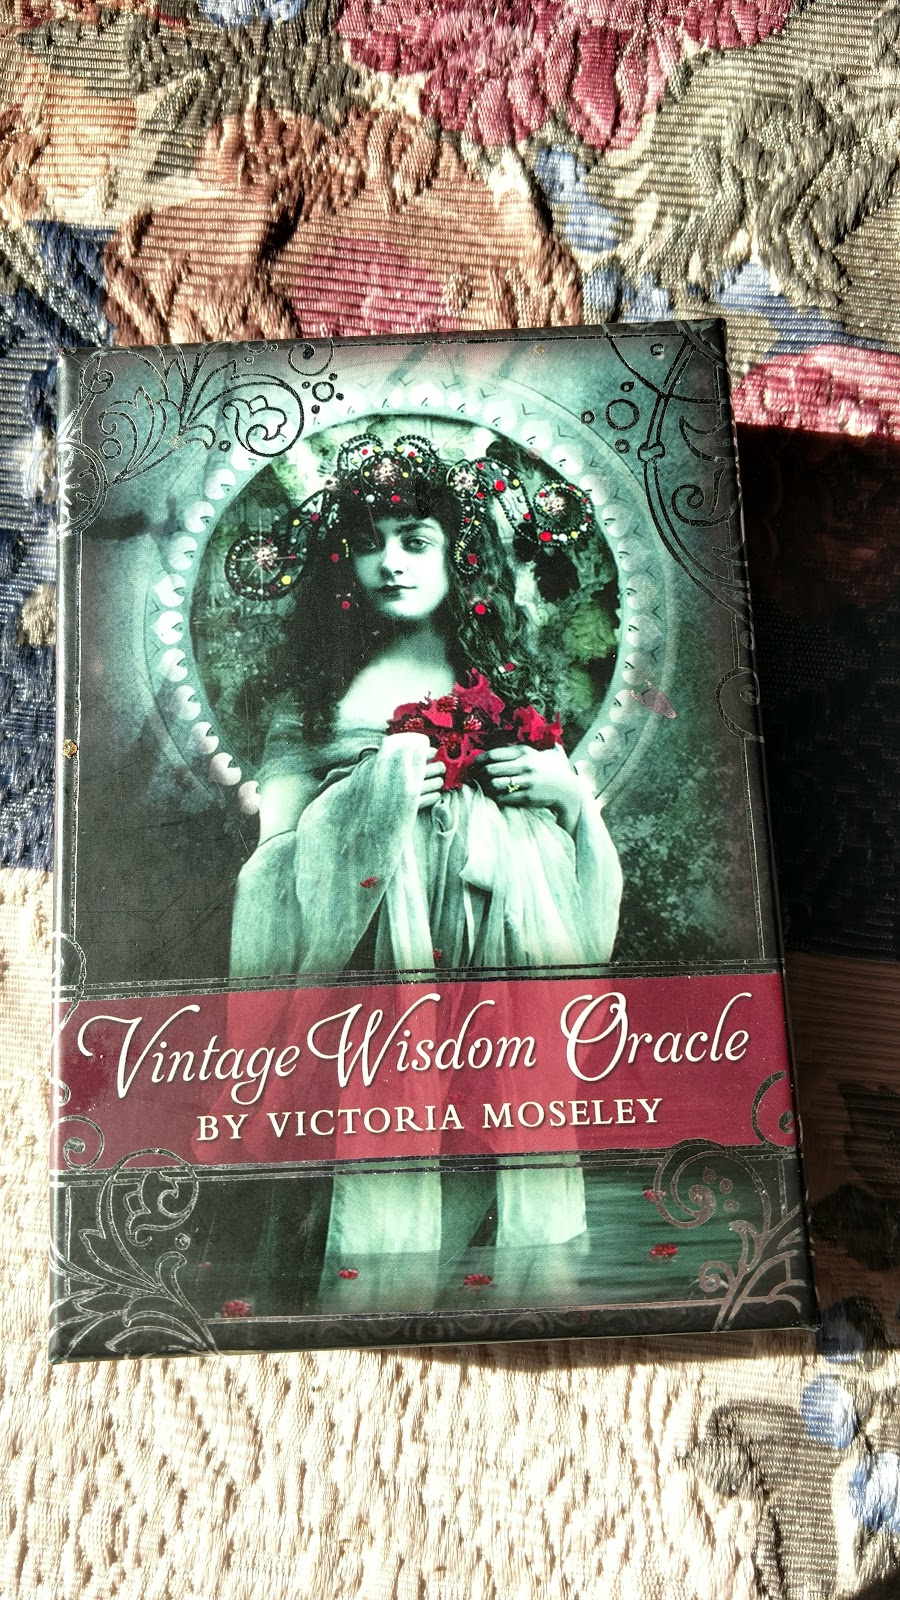 Vintage Wisdom Oracle Bonnie Cehovet: Victorian Vintage Musings: Discovering Your Inner Wisdom